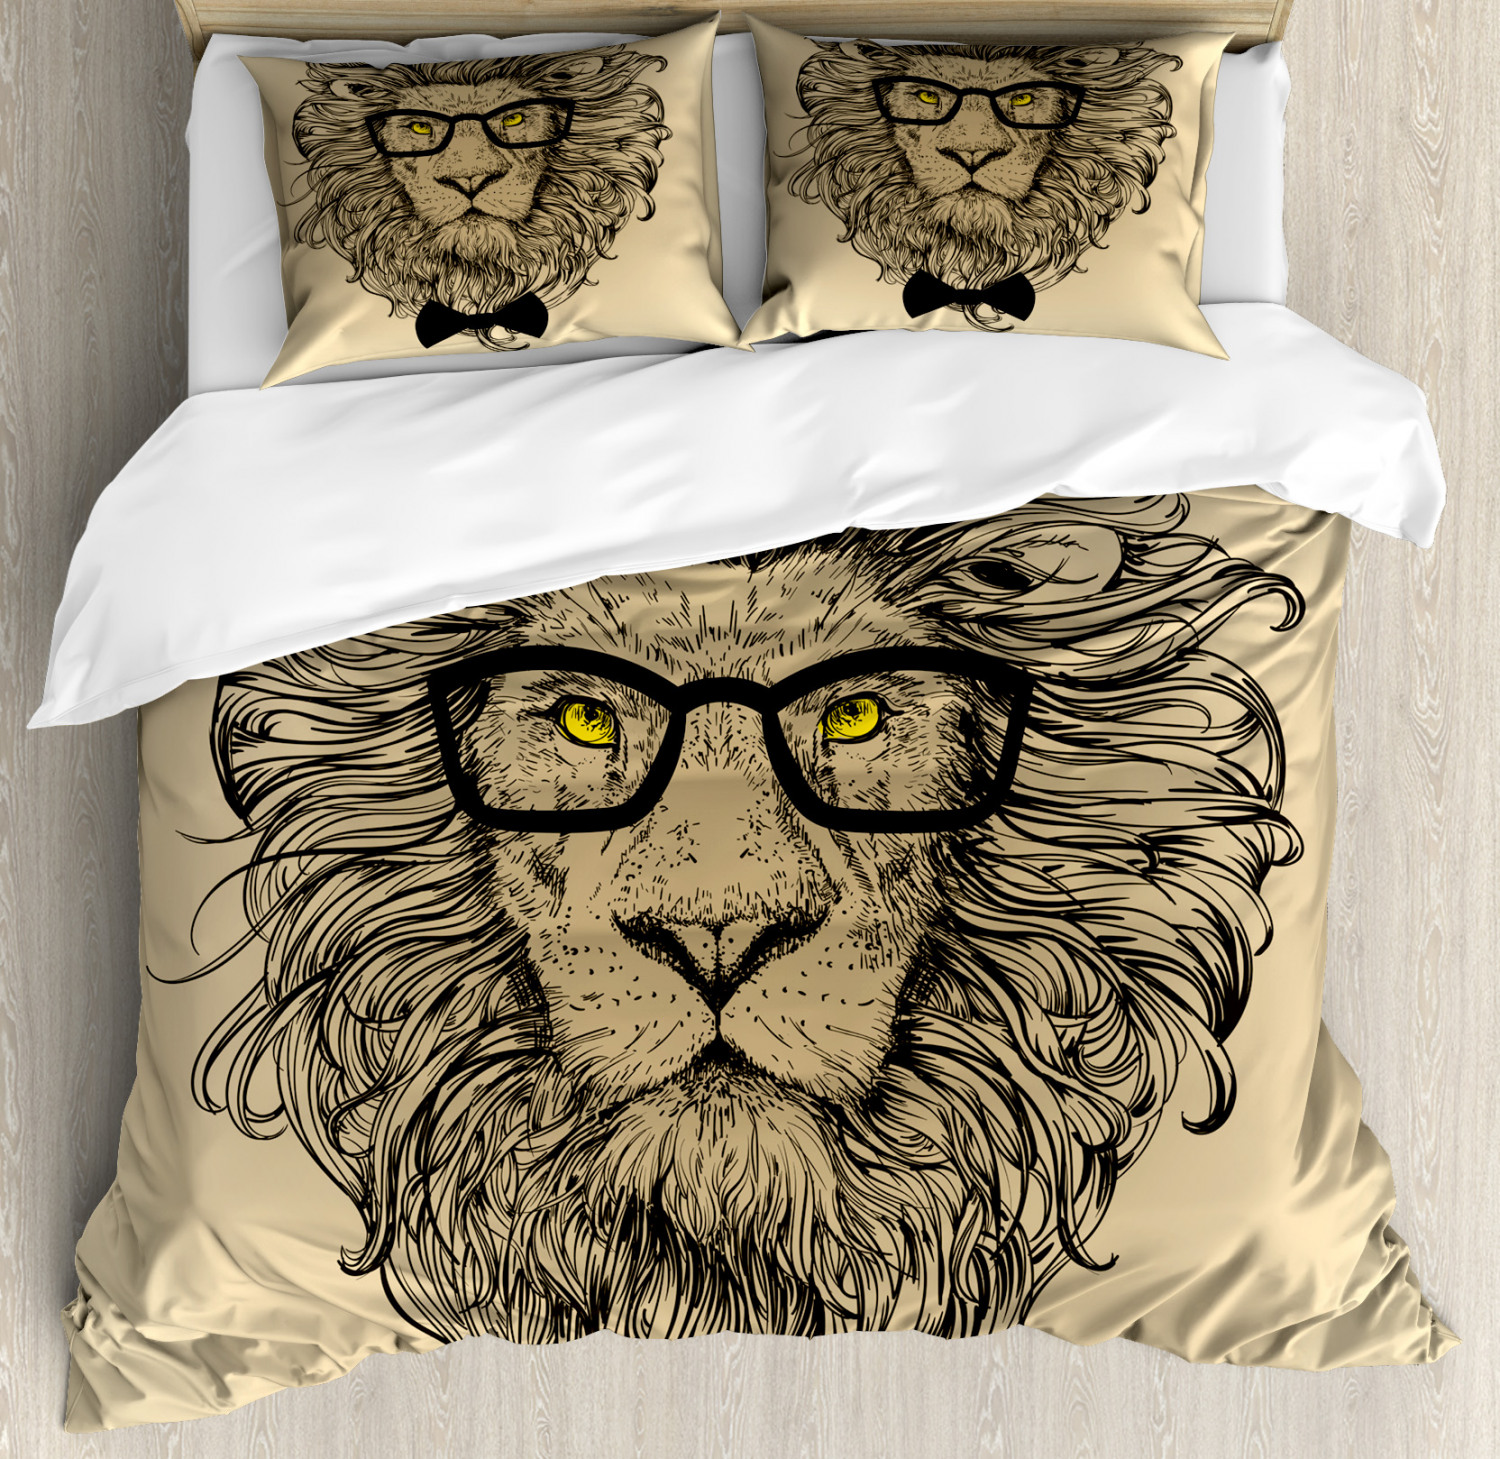 Indie Duvet Cover Set with Pillow Shams Dandy Cool Lion Character Print